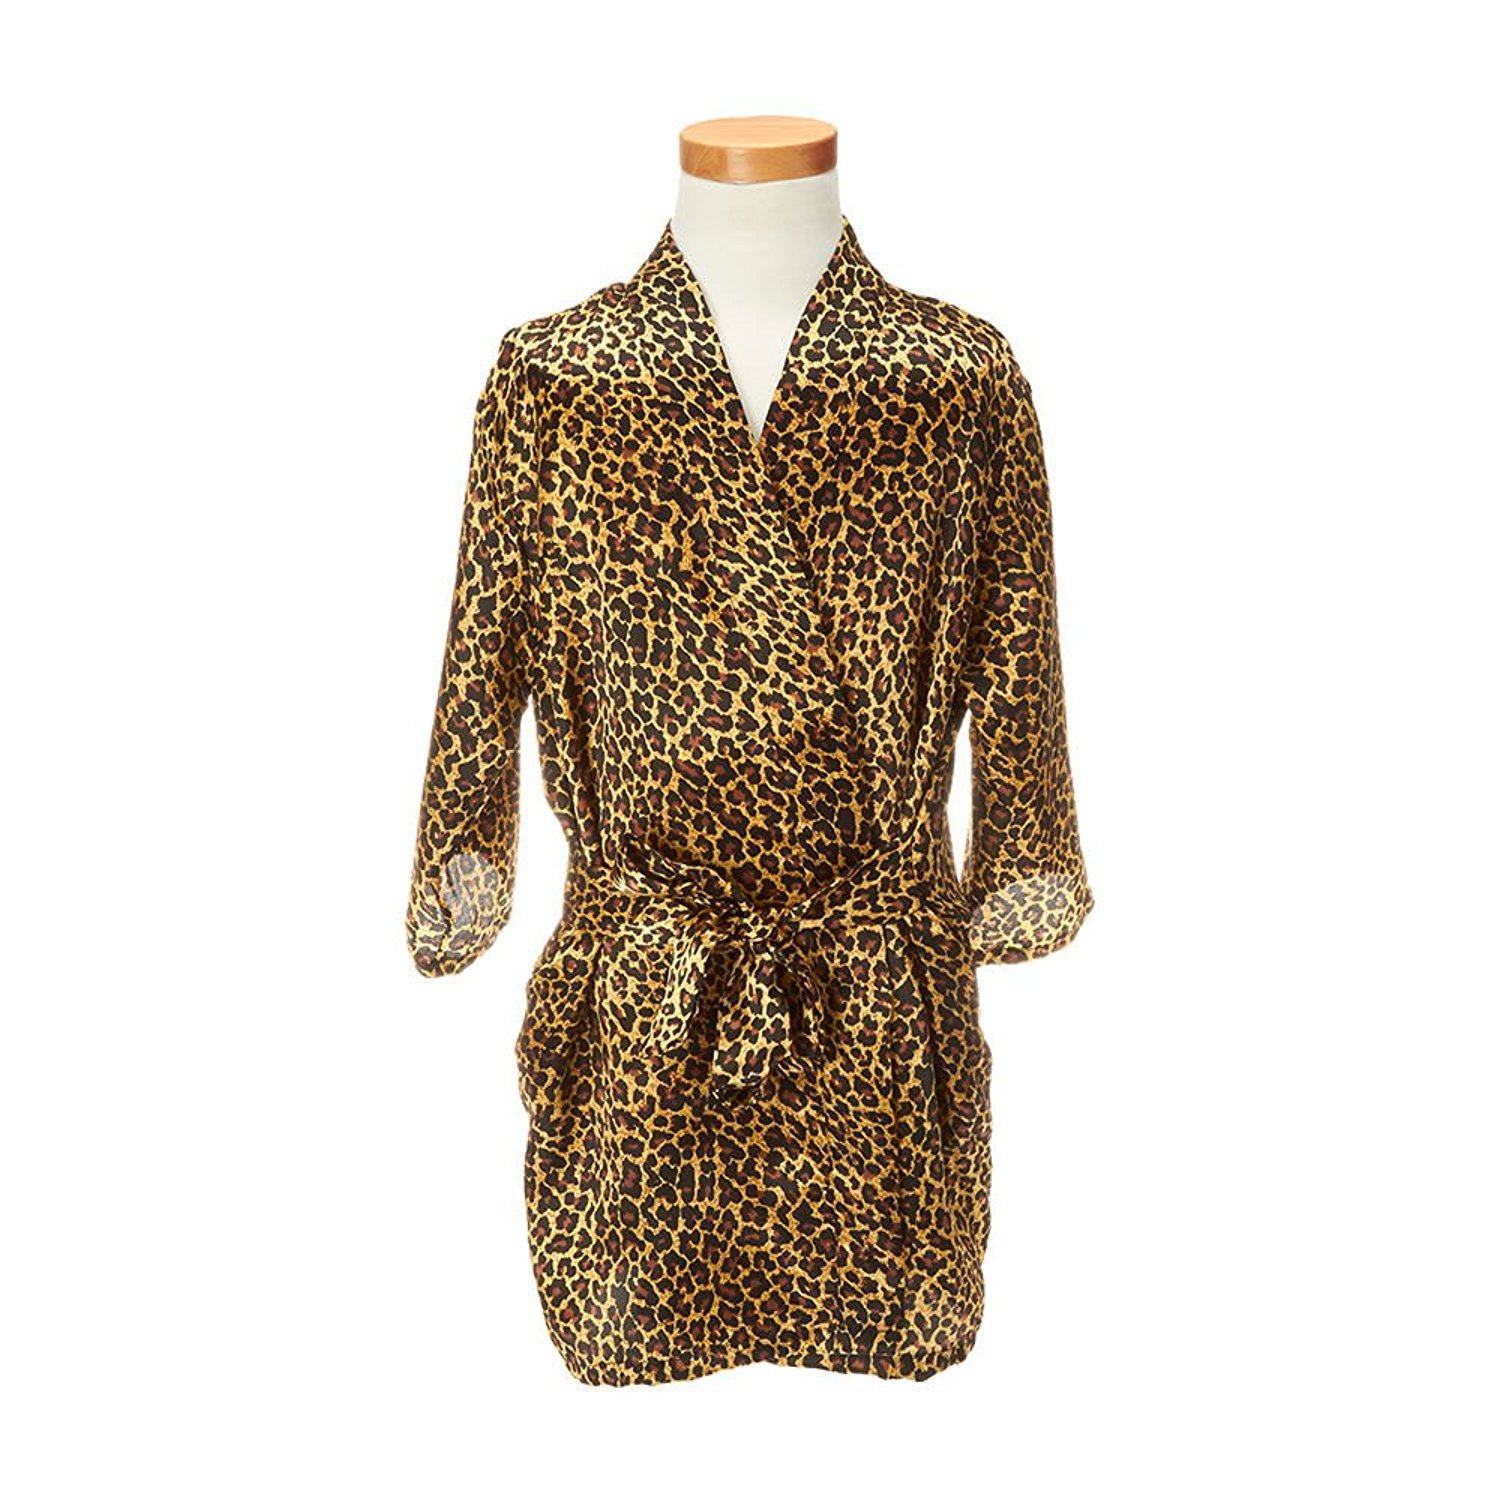 6492b5f3d7c Get Quotations · Claire s Girl s Leopard Print Girl s Robe